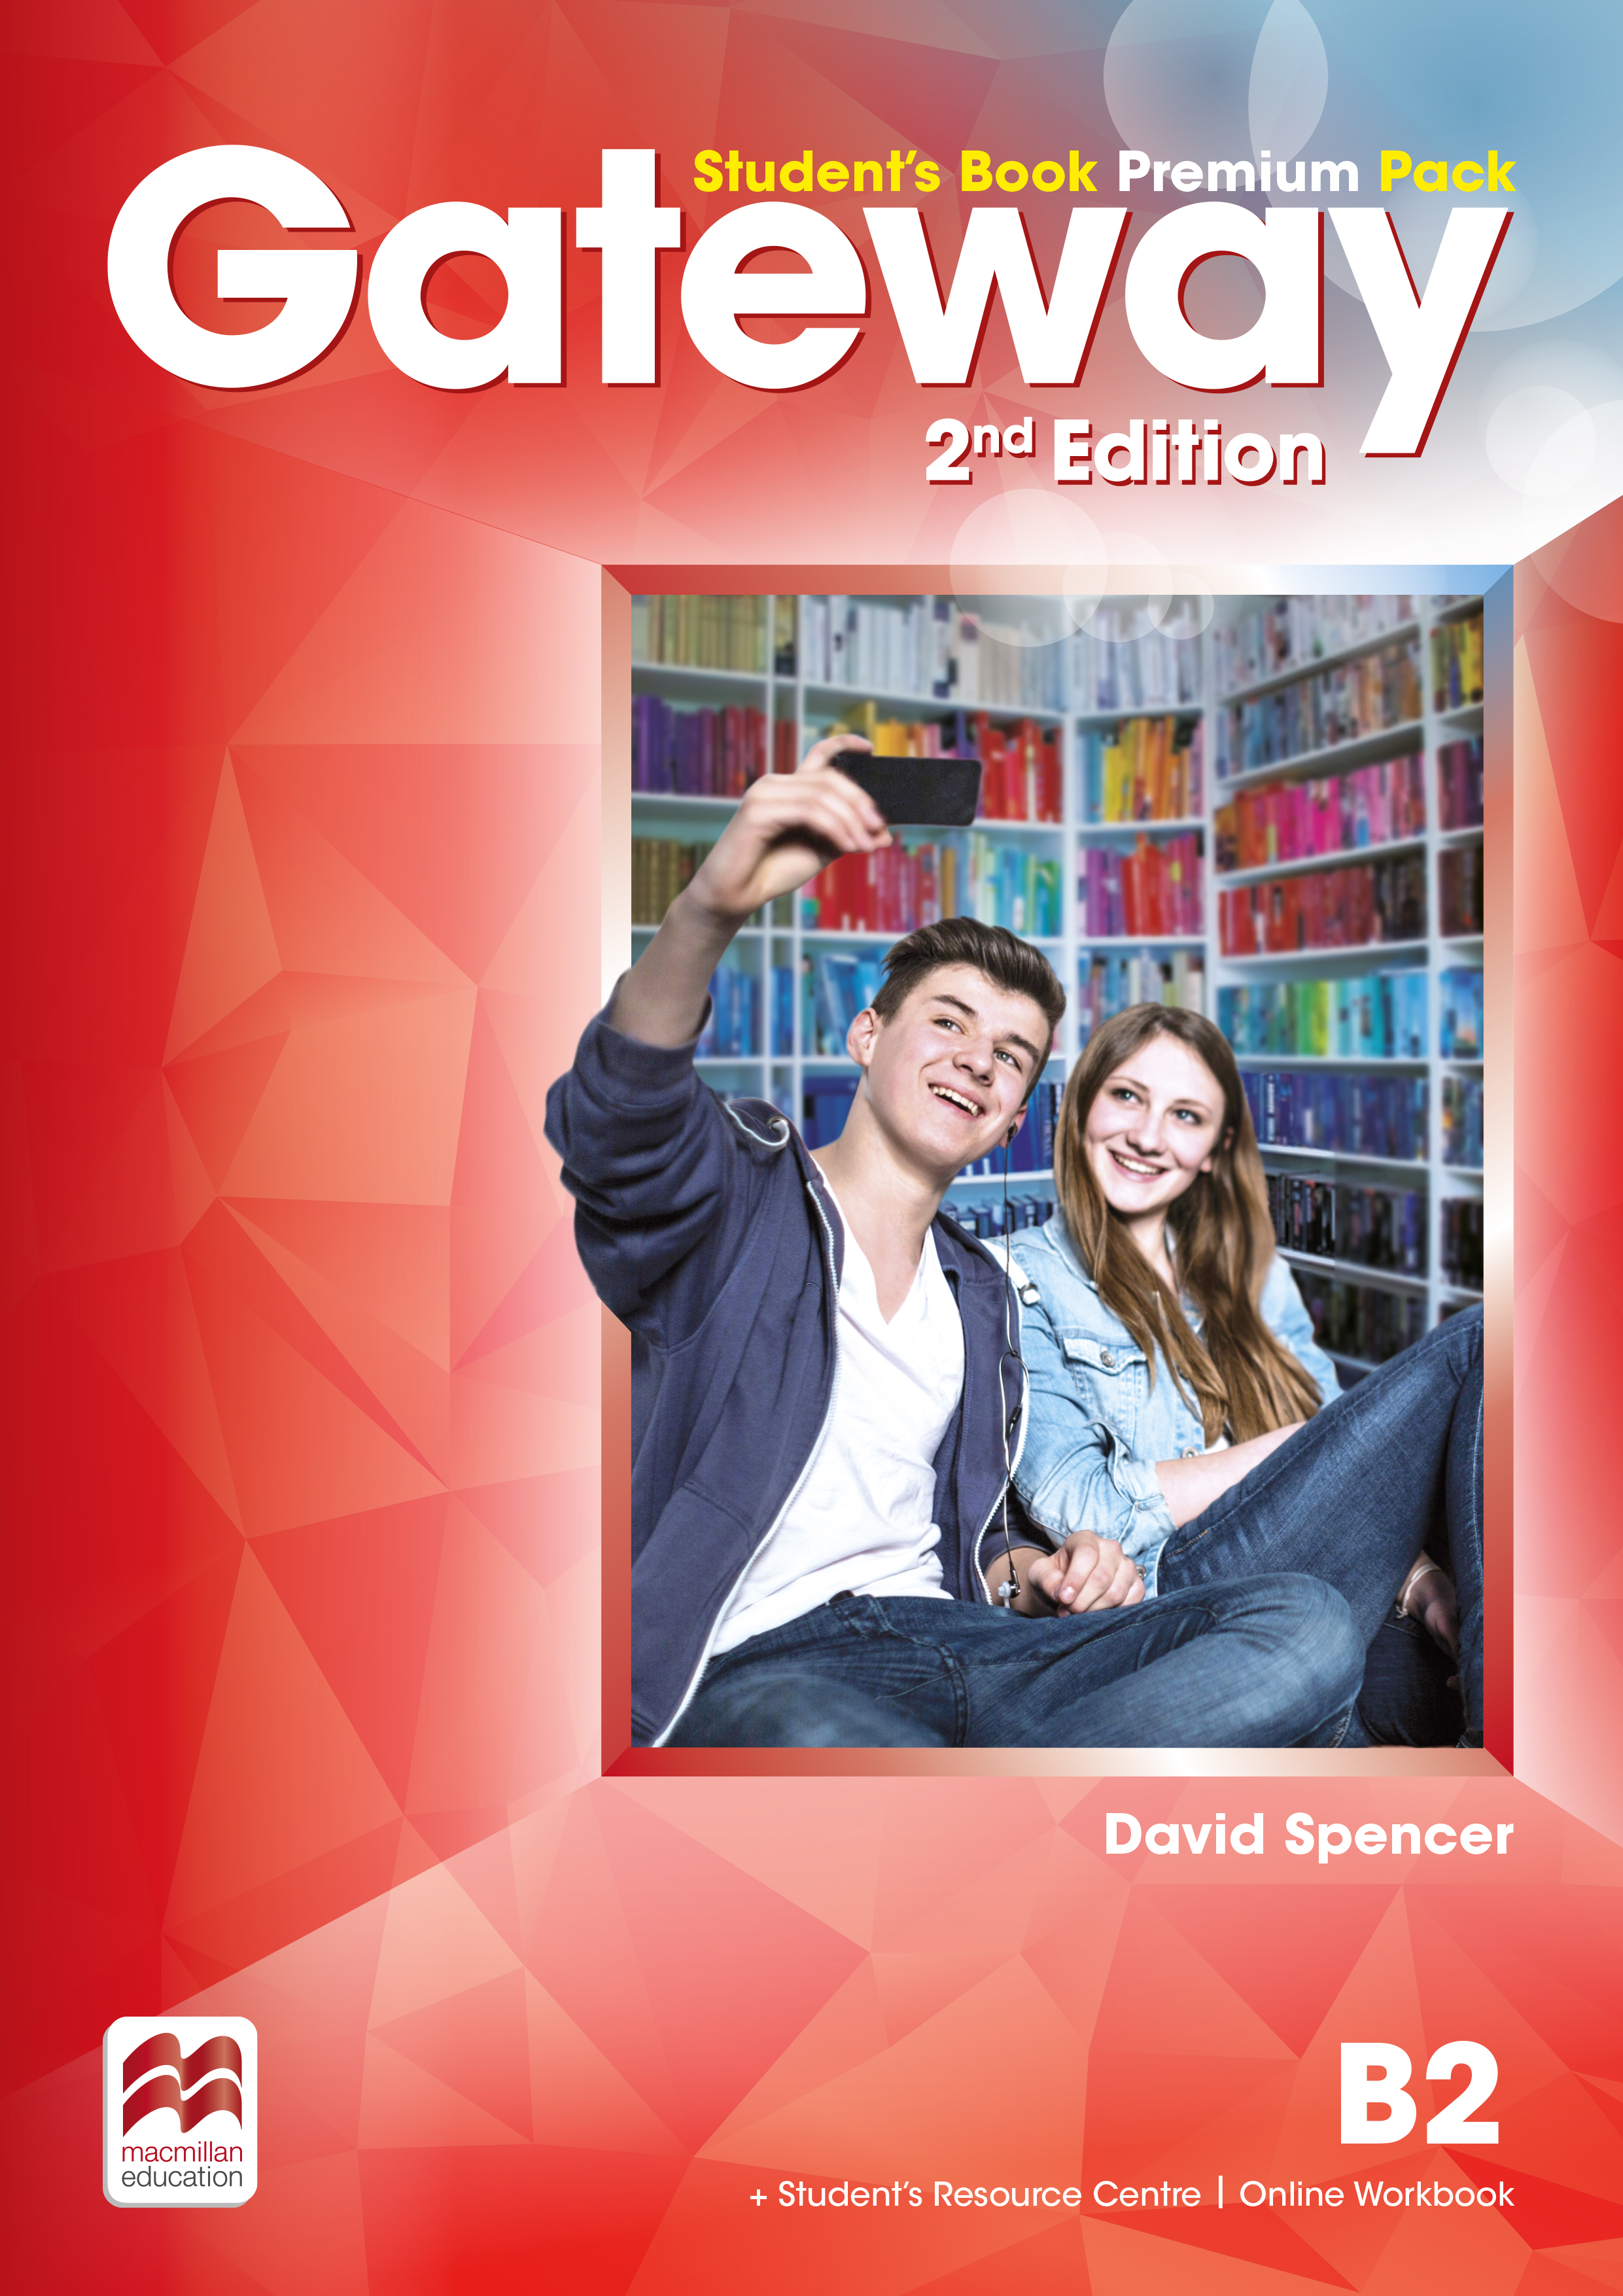 Gateway 2nd Edition B2 Student